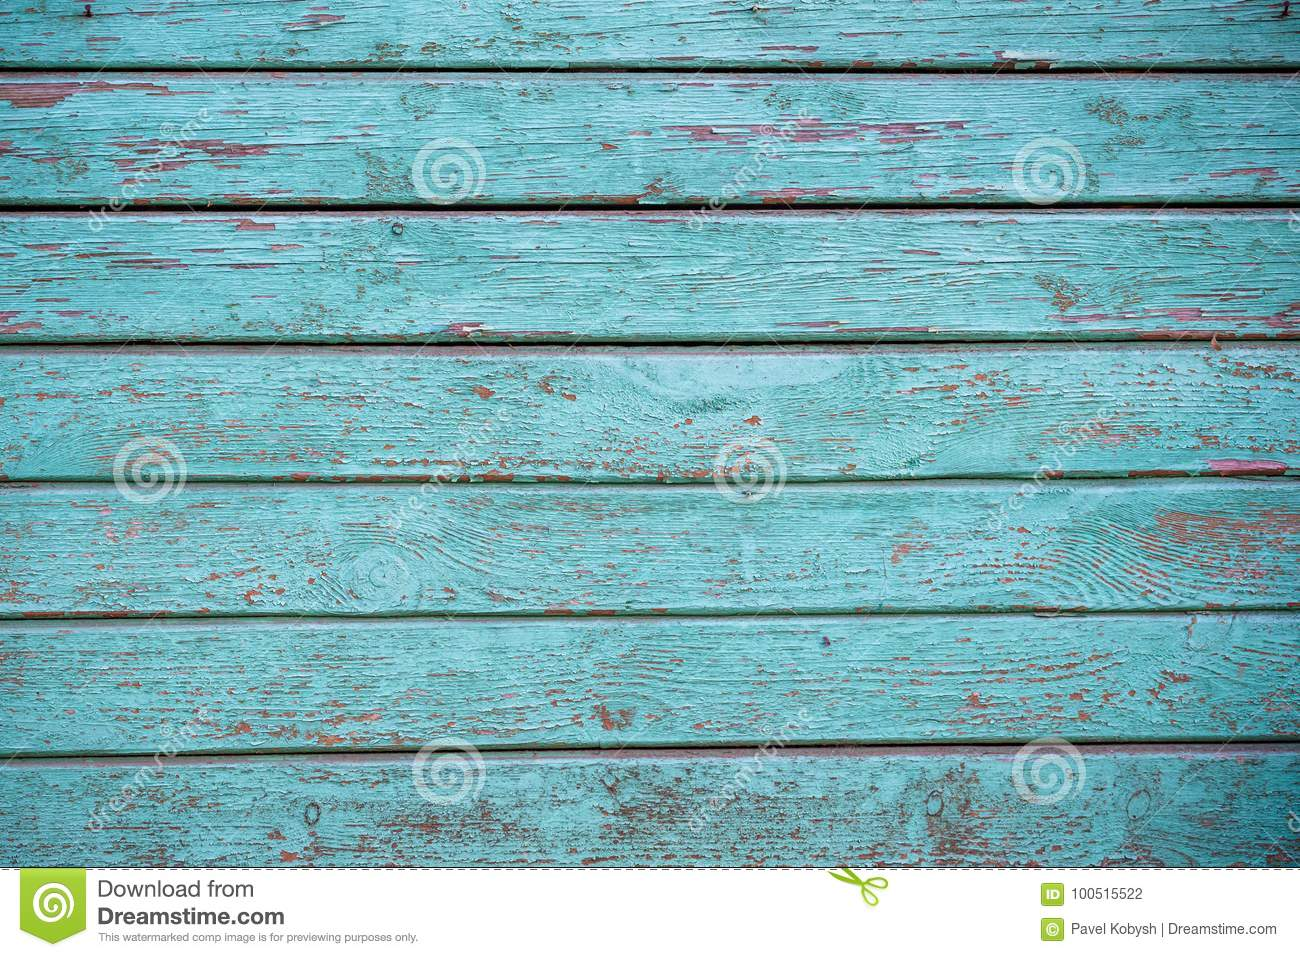 Blue faded painted wooden texture, background and wallpaper. Horizontal composition